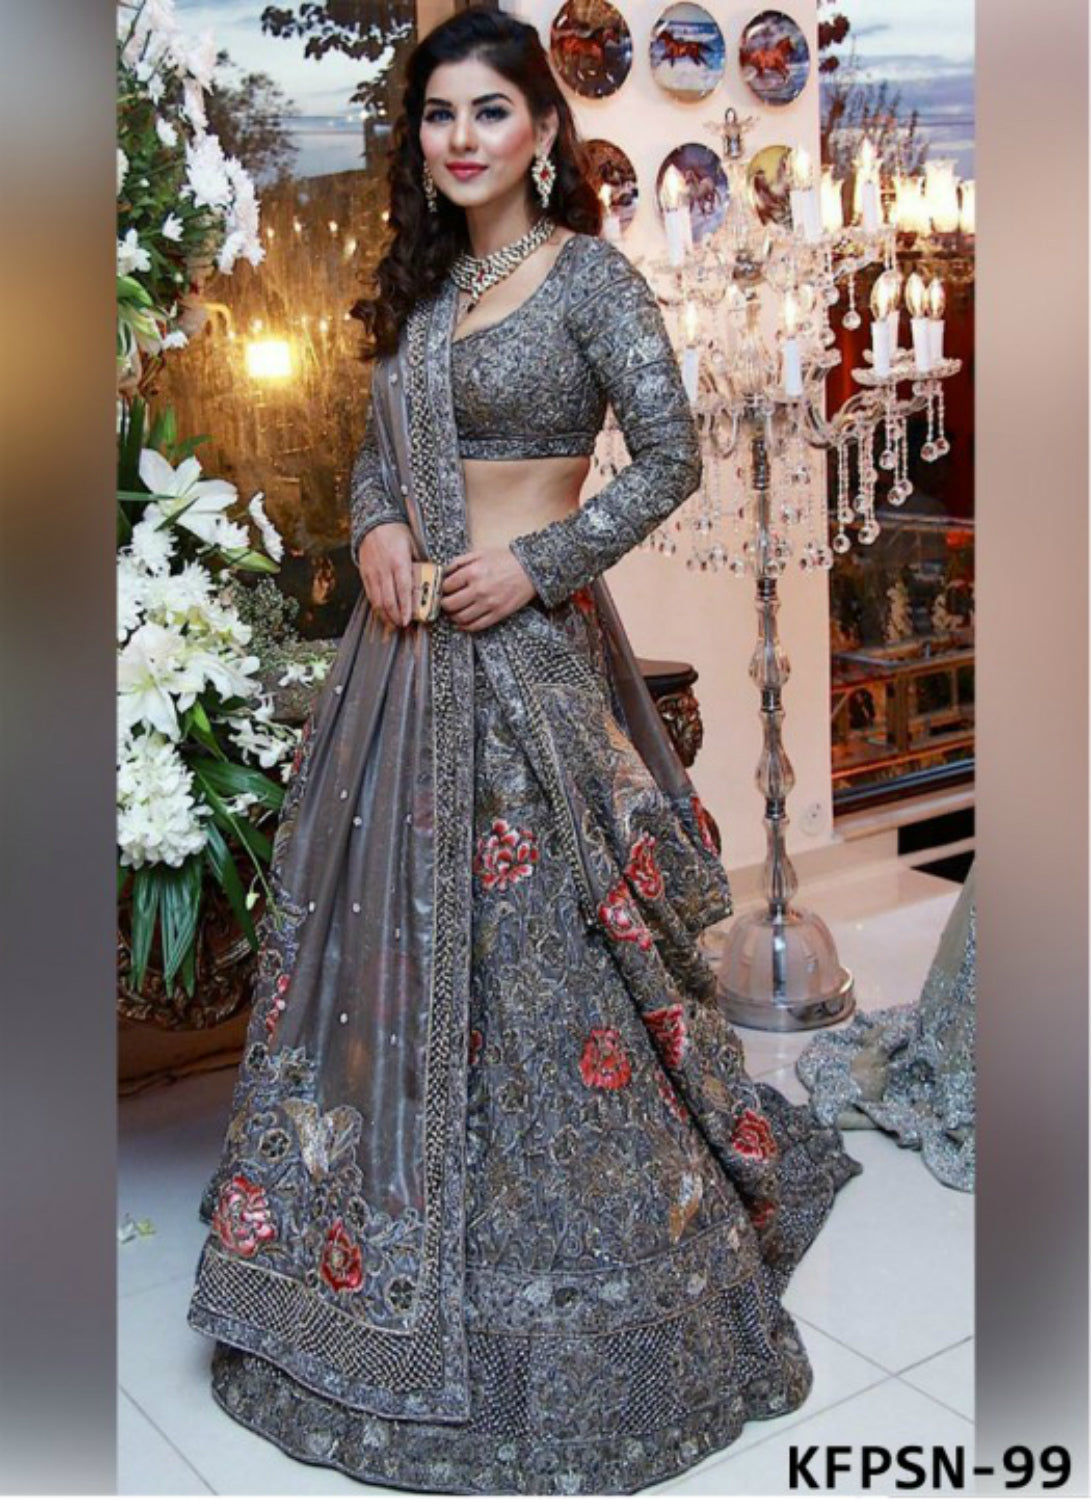 Partywear KFPSN99 Bollywood Inspired Grey Mono Net Silk Lehenga Choli by Fashion Nation